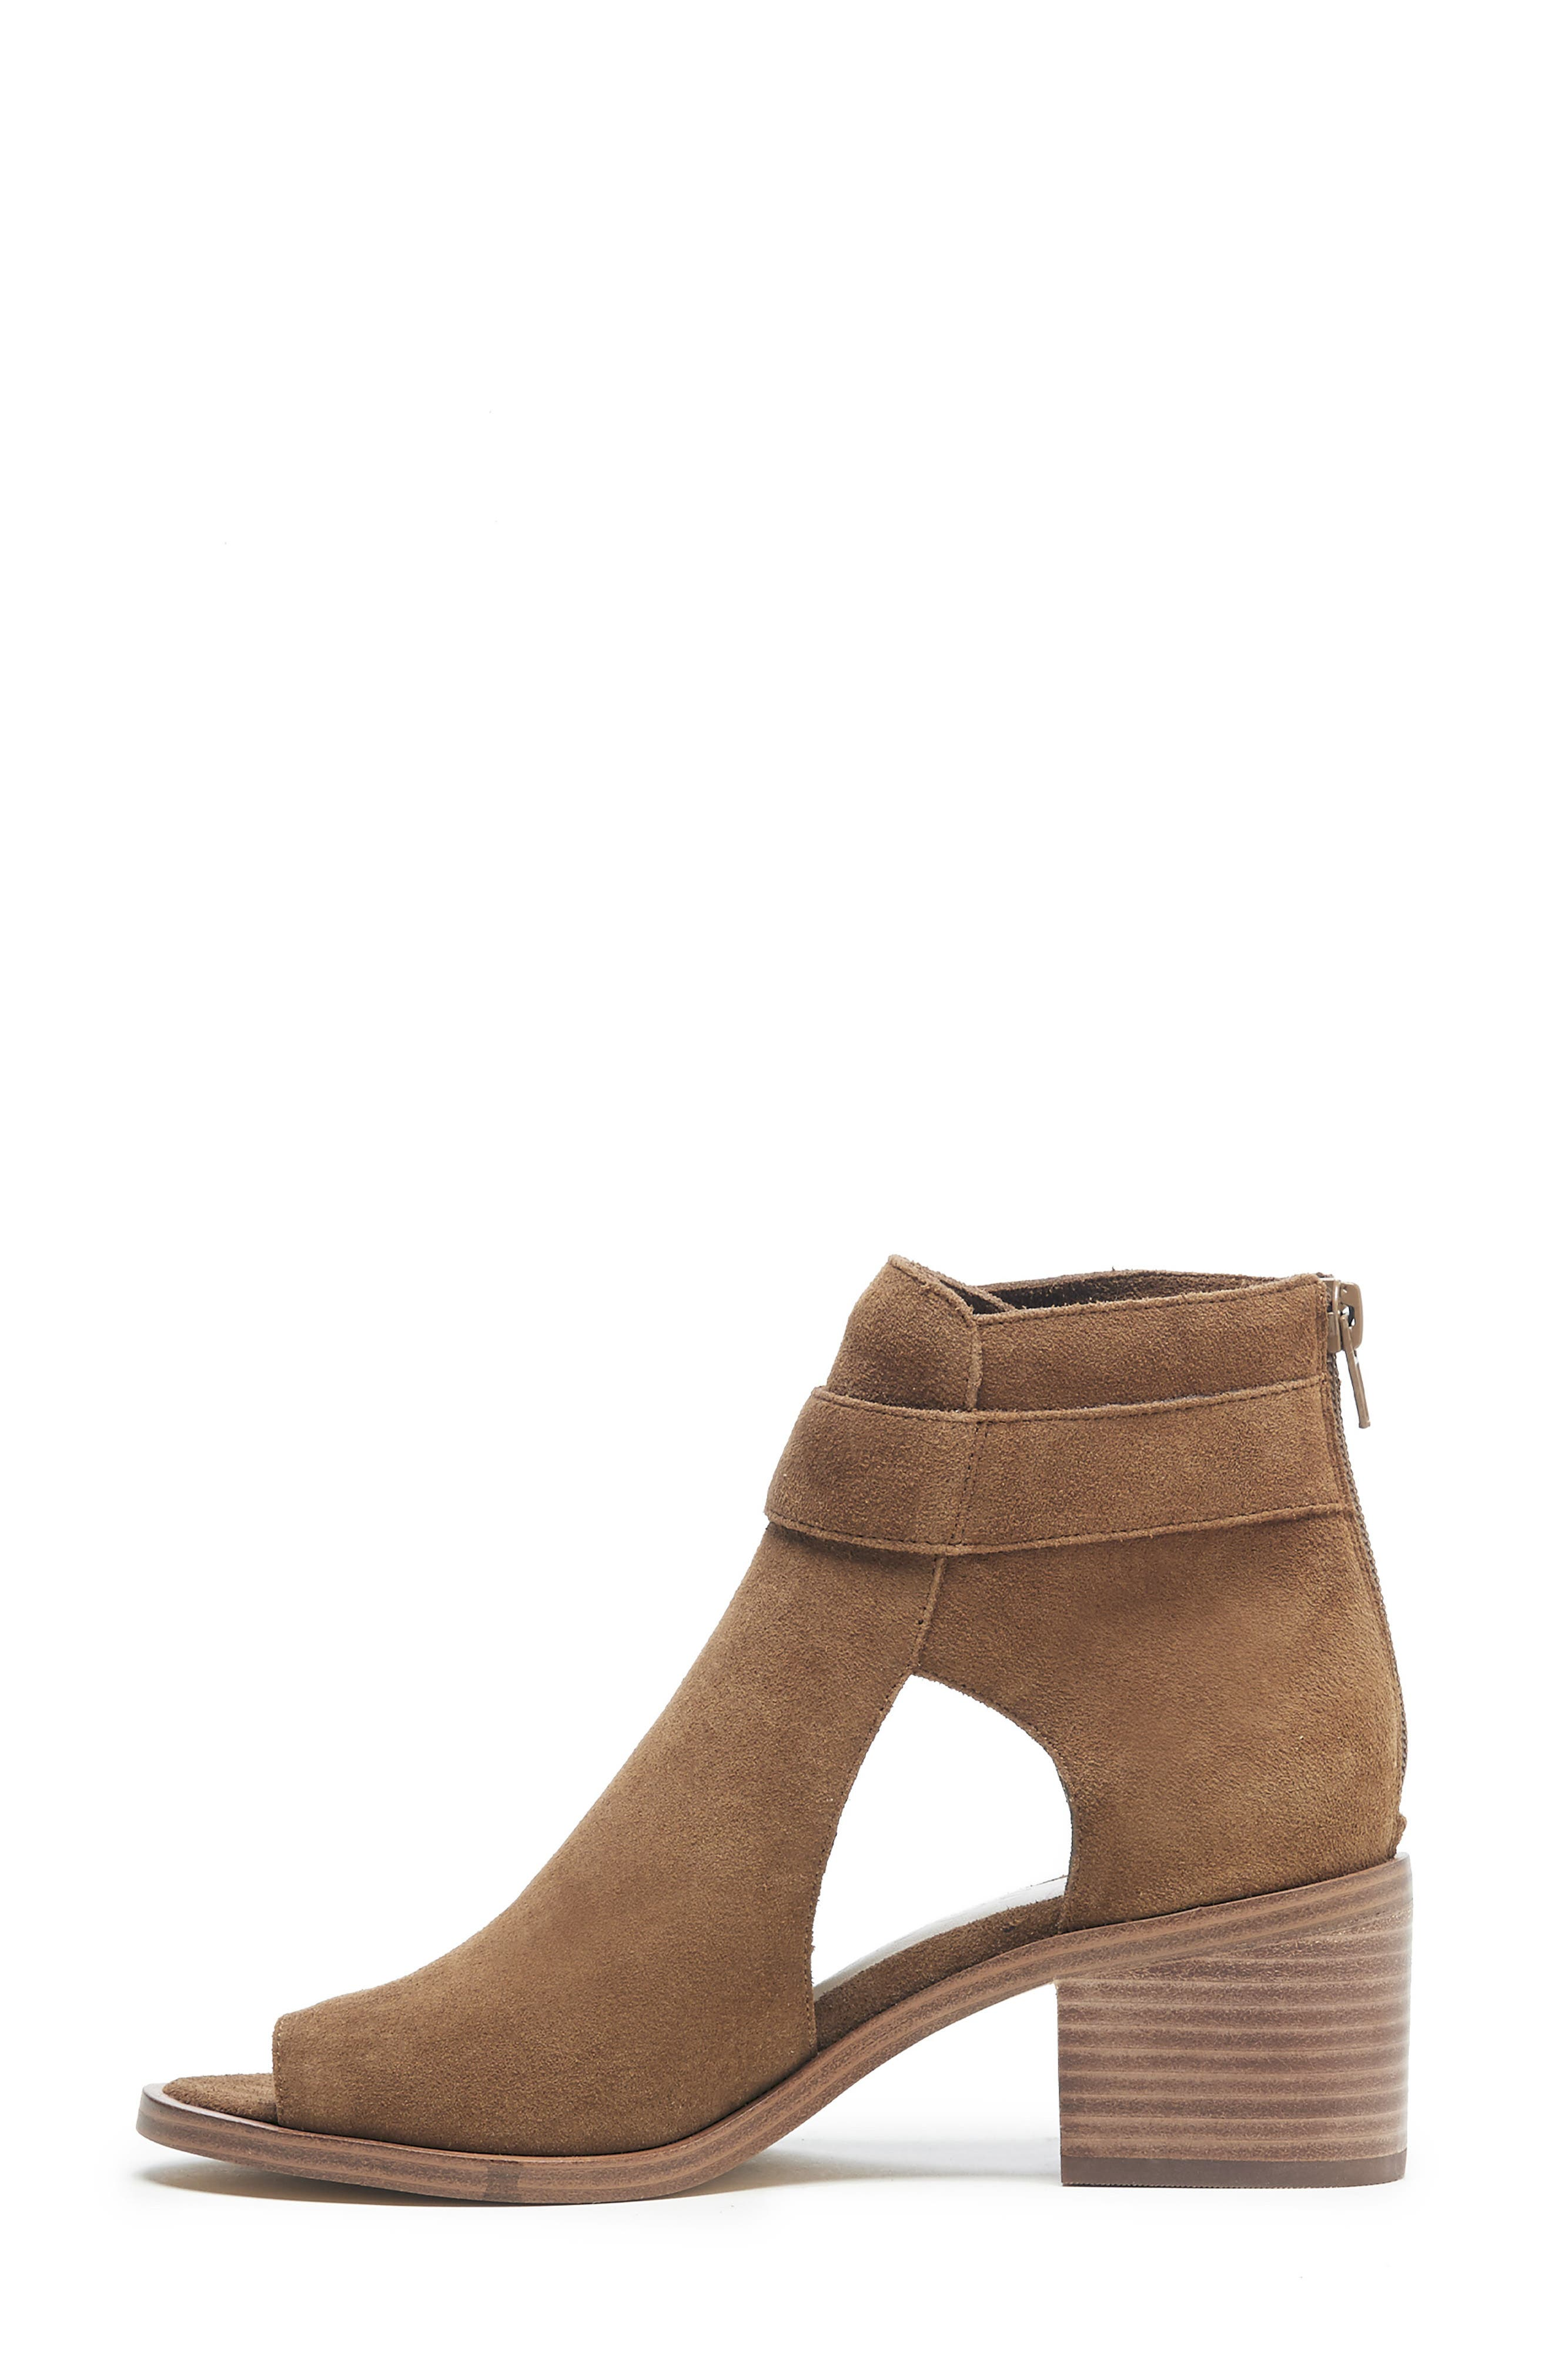 SOLE SOCIETY, Tracy Block Heel Sandal, Alternate thumbnail 5, color, TOBACCO SUEDE